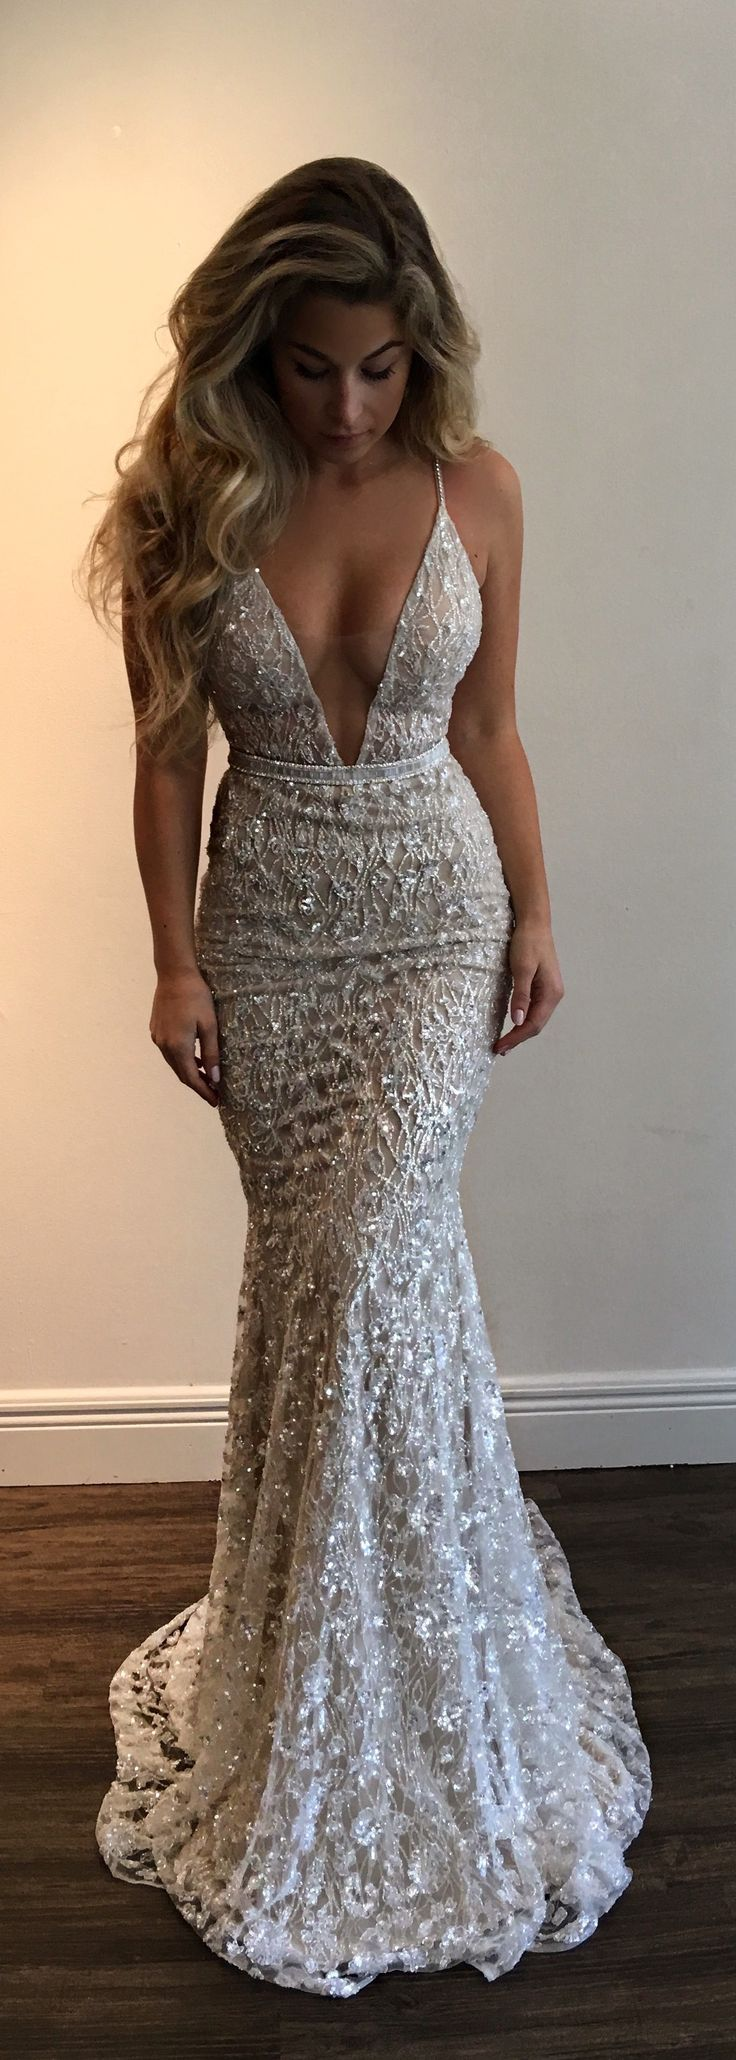 This wedding dress is just so glamorous bertabridal know how to ...